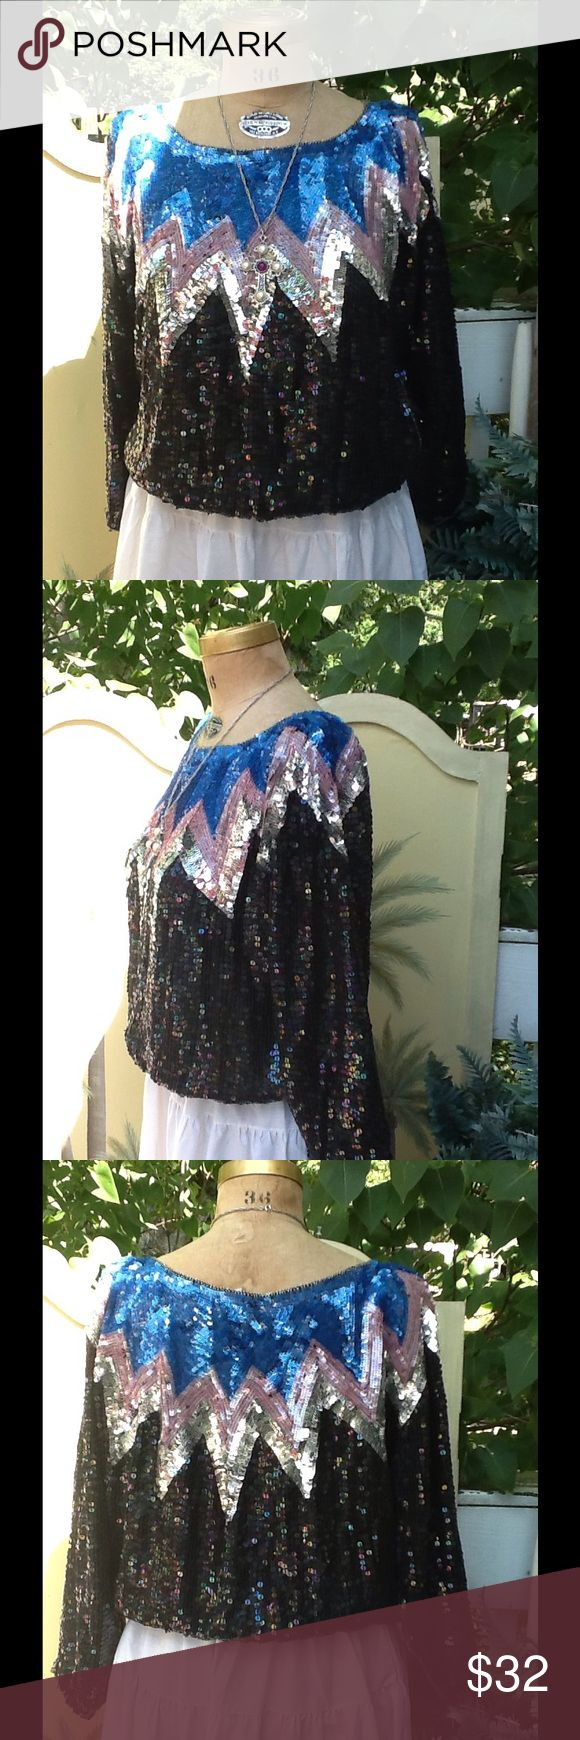 "VTG 70s FULLY SEQUINED & SILK HIPPIE TOP This is GORGEOUS!!!its from the 70s,it's a fully sequined & silk hippie top..these were very popular back then we wore these all the time with jeans,it's in a predominantly black with pink,silver & blue sequins,shoulder pads, ELASTICIZED bottom hem and sleeve cuffs,it's made in India by Metaamorphosis, SZ M..excellent condition these didnt usually survive very well for how often we wore them a lot of sequins ended up missing! Measurements: L:22""…"